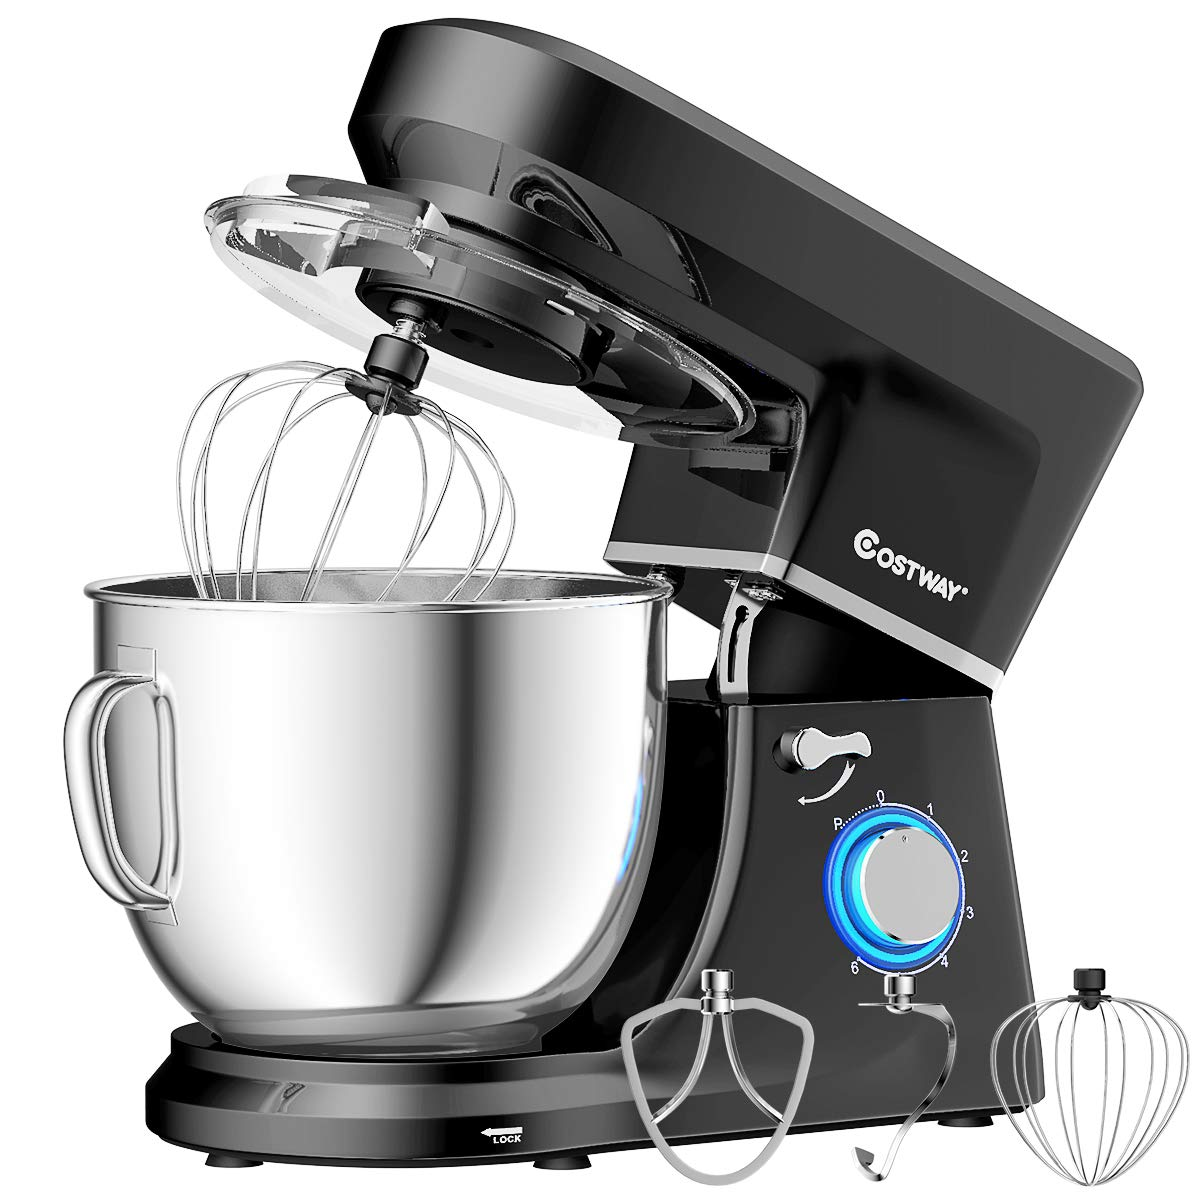 COSTWAY Stand Mixer 660W 6-Speed, Electric Mixer with Stainless Steel Bowl, Tilt-Head Food Mixer, High Performance Kitchen Electric Mixer Dough Mixer w/ 3 Different Attachments,7.5 Quart Bowl , Low Noise, Whisk(Black-update) by COSTWAY